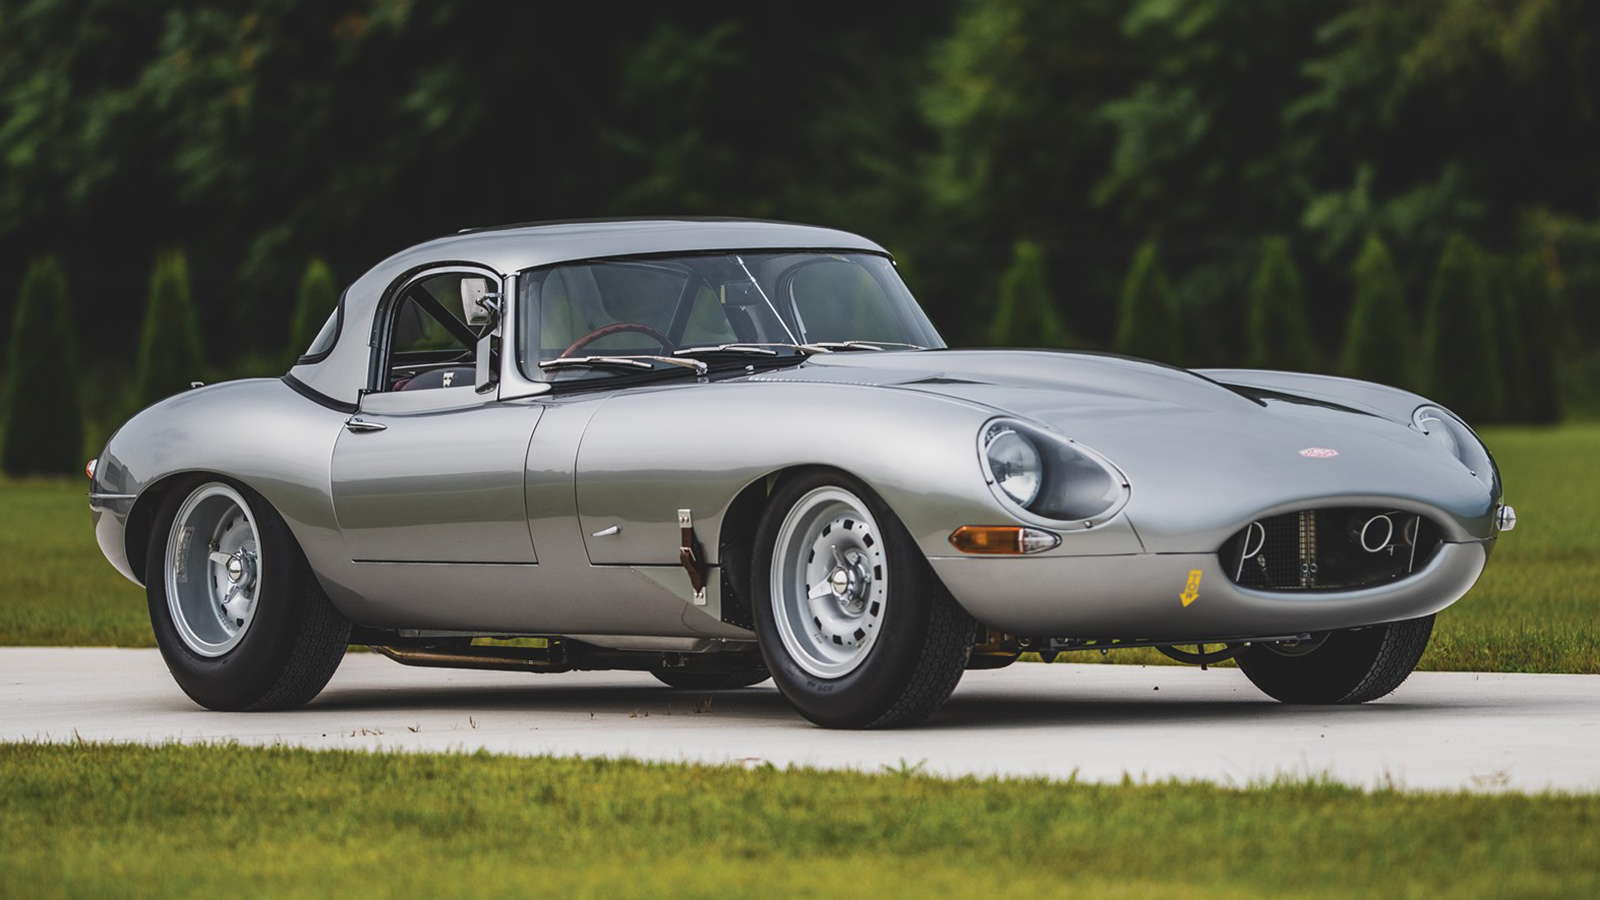 A Stunning 1963 Jaguar E-Type Lightweight Goes To Auction - IMBOLDN